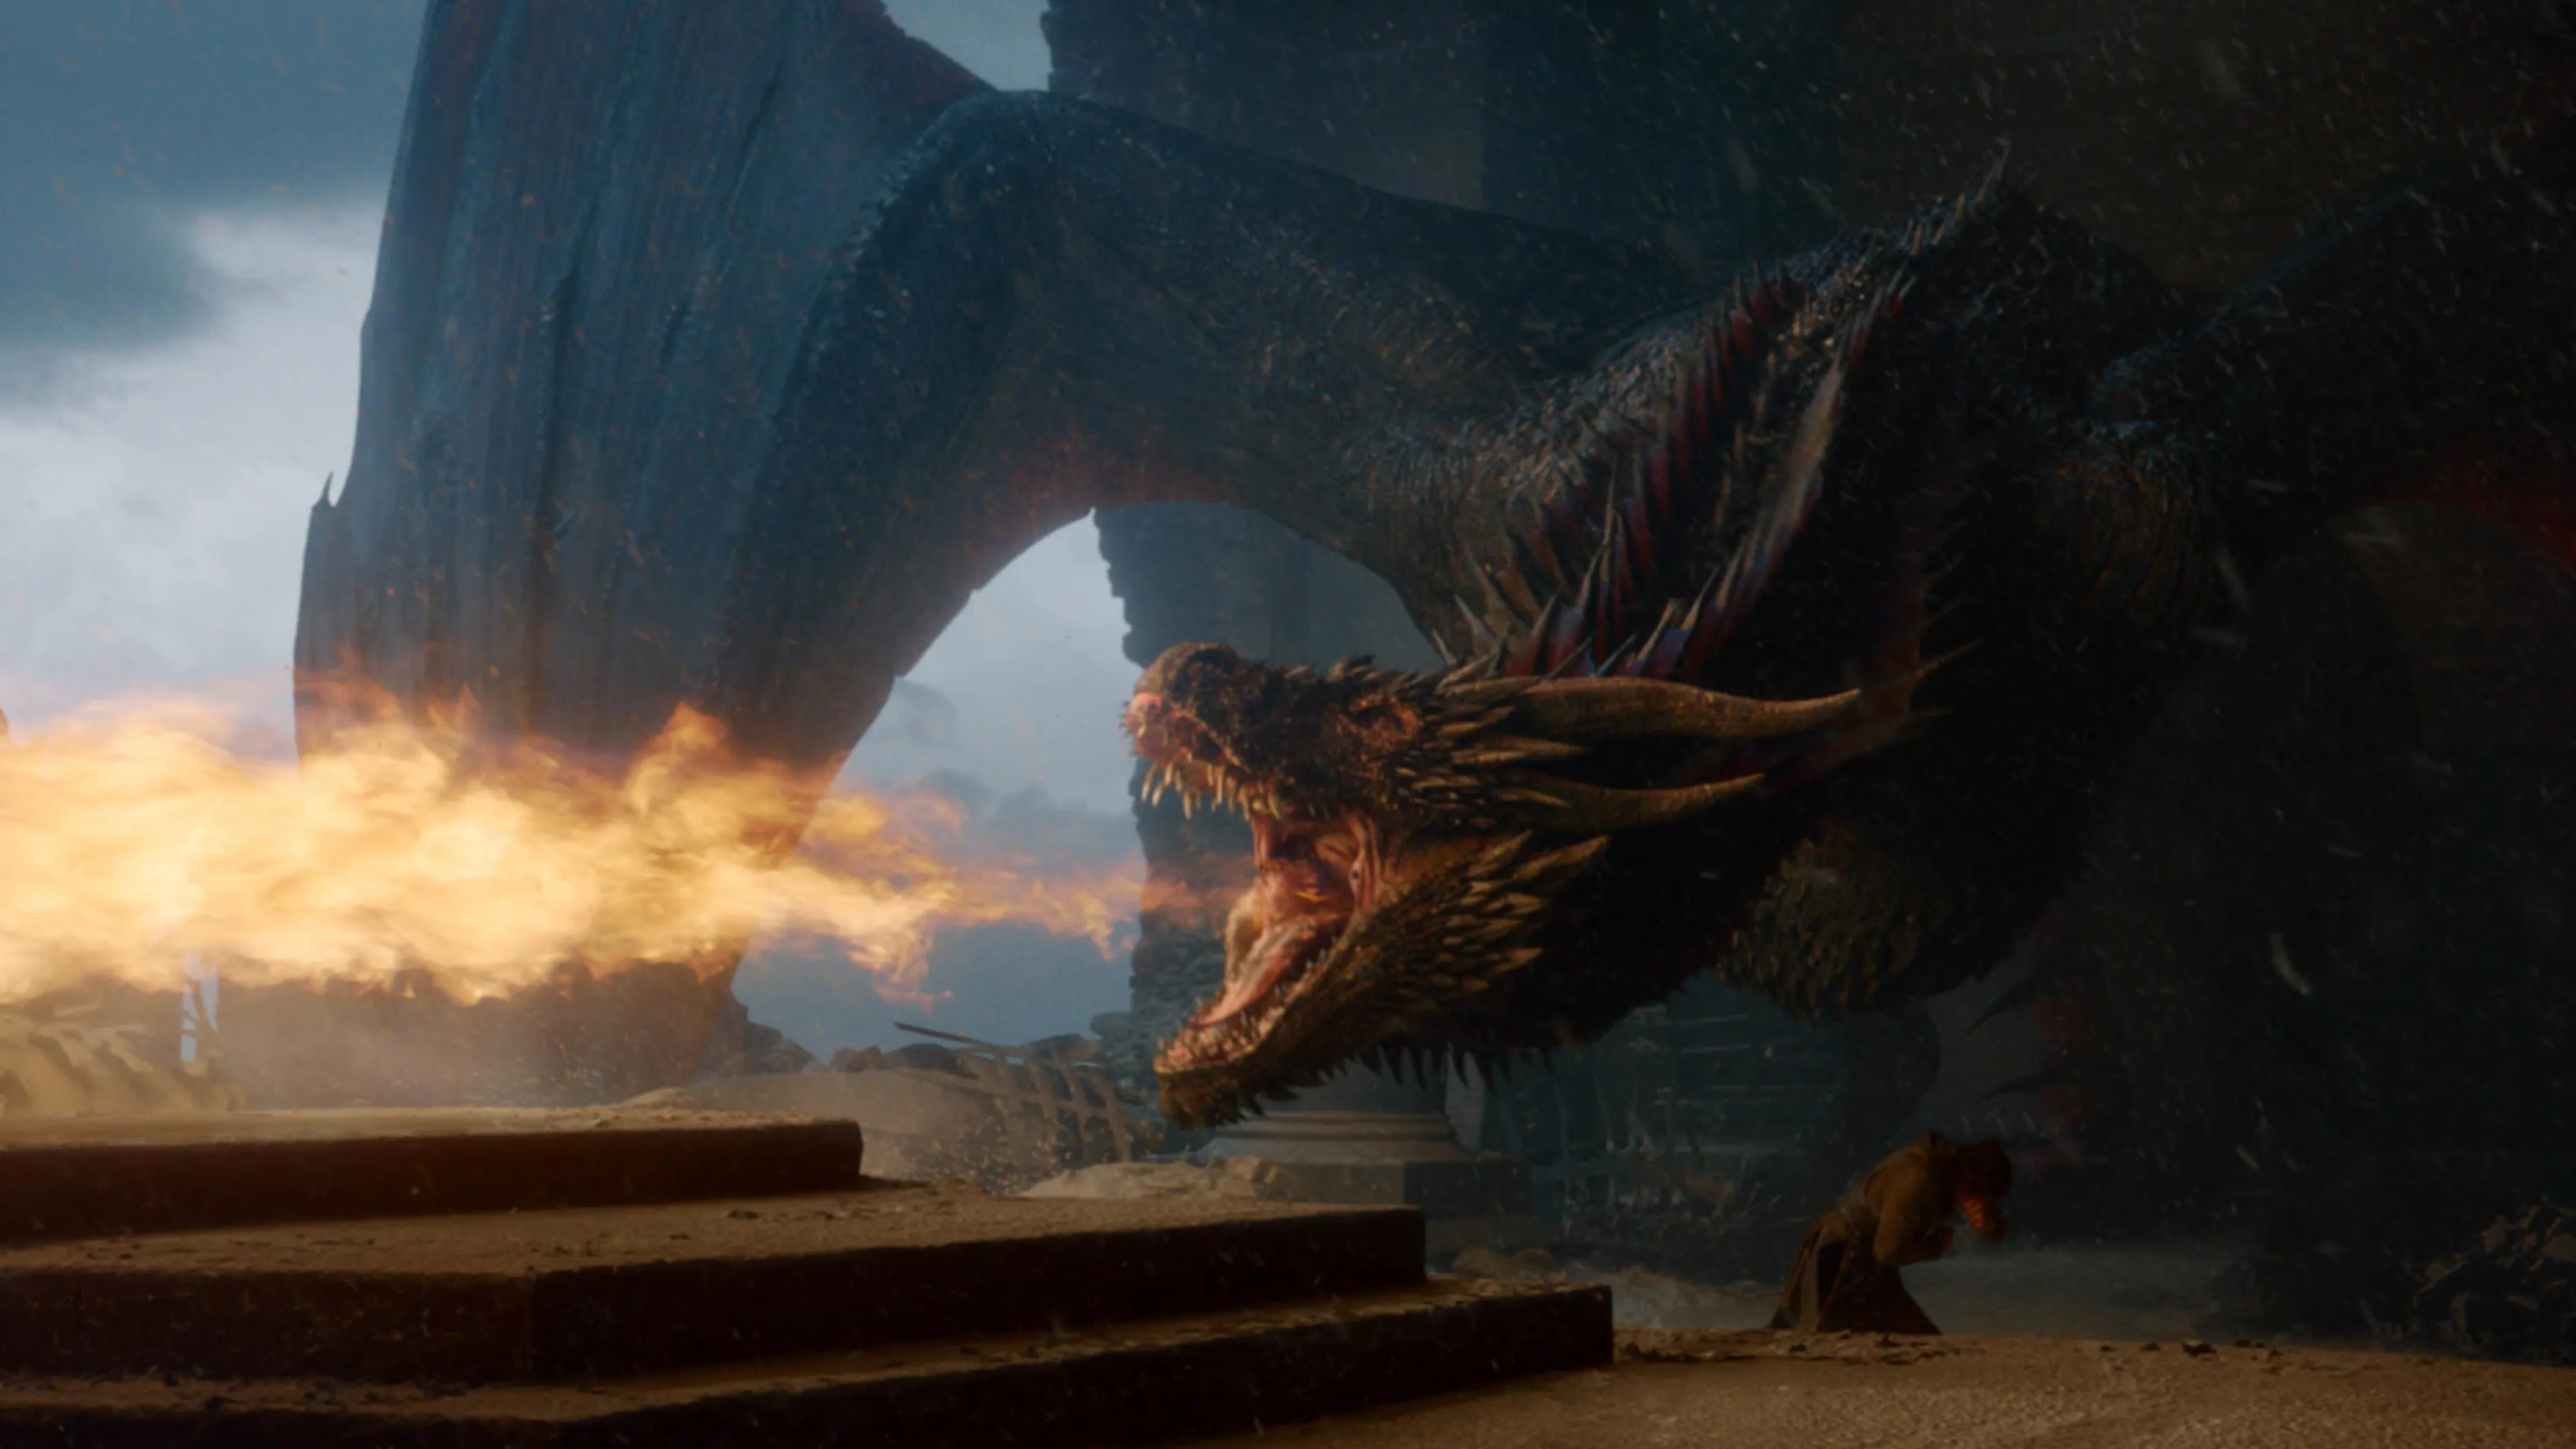 Game of Thrones Drogon quema el trono